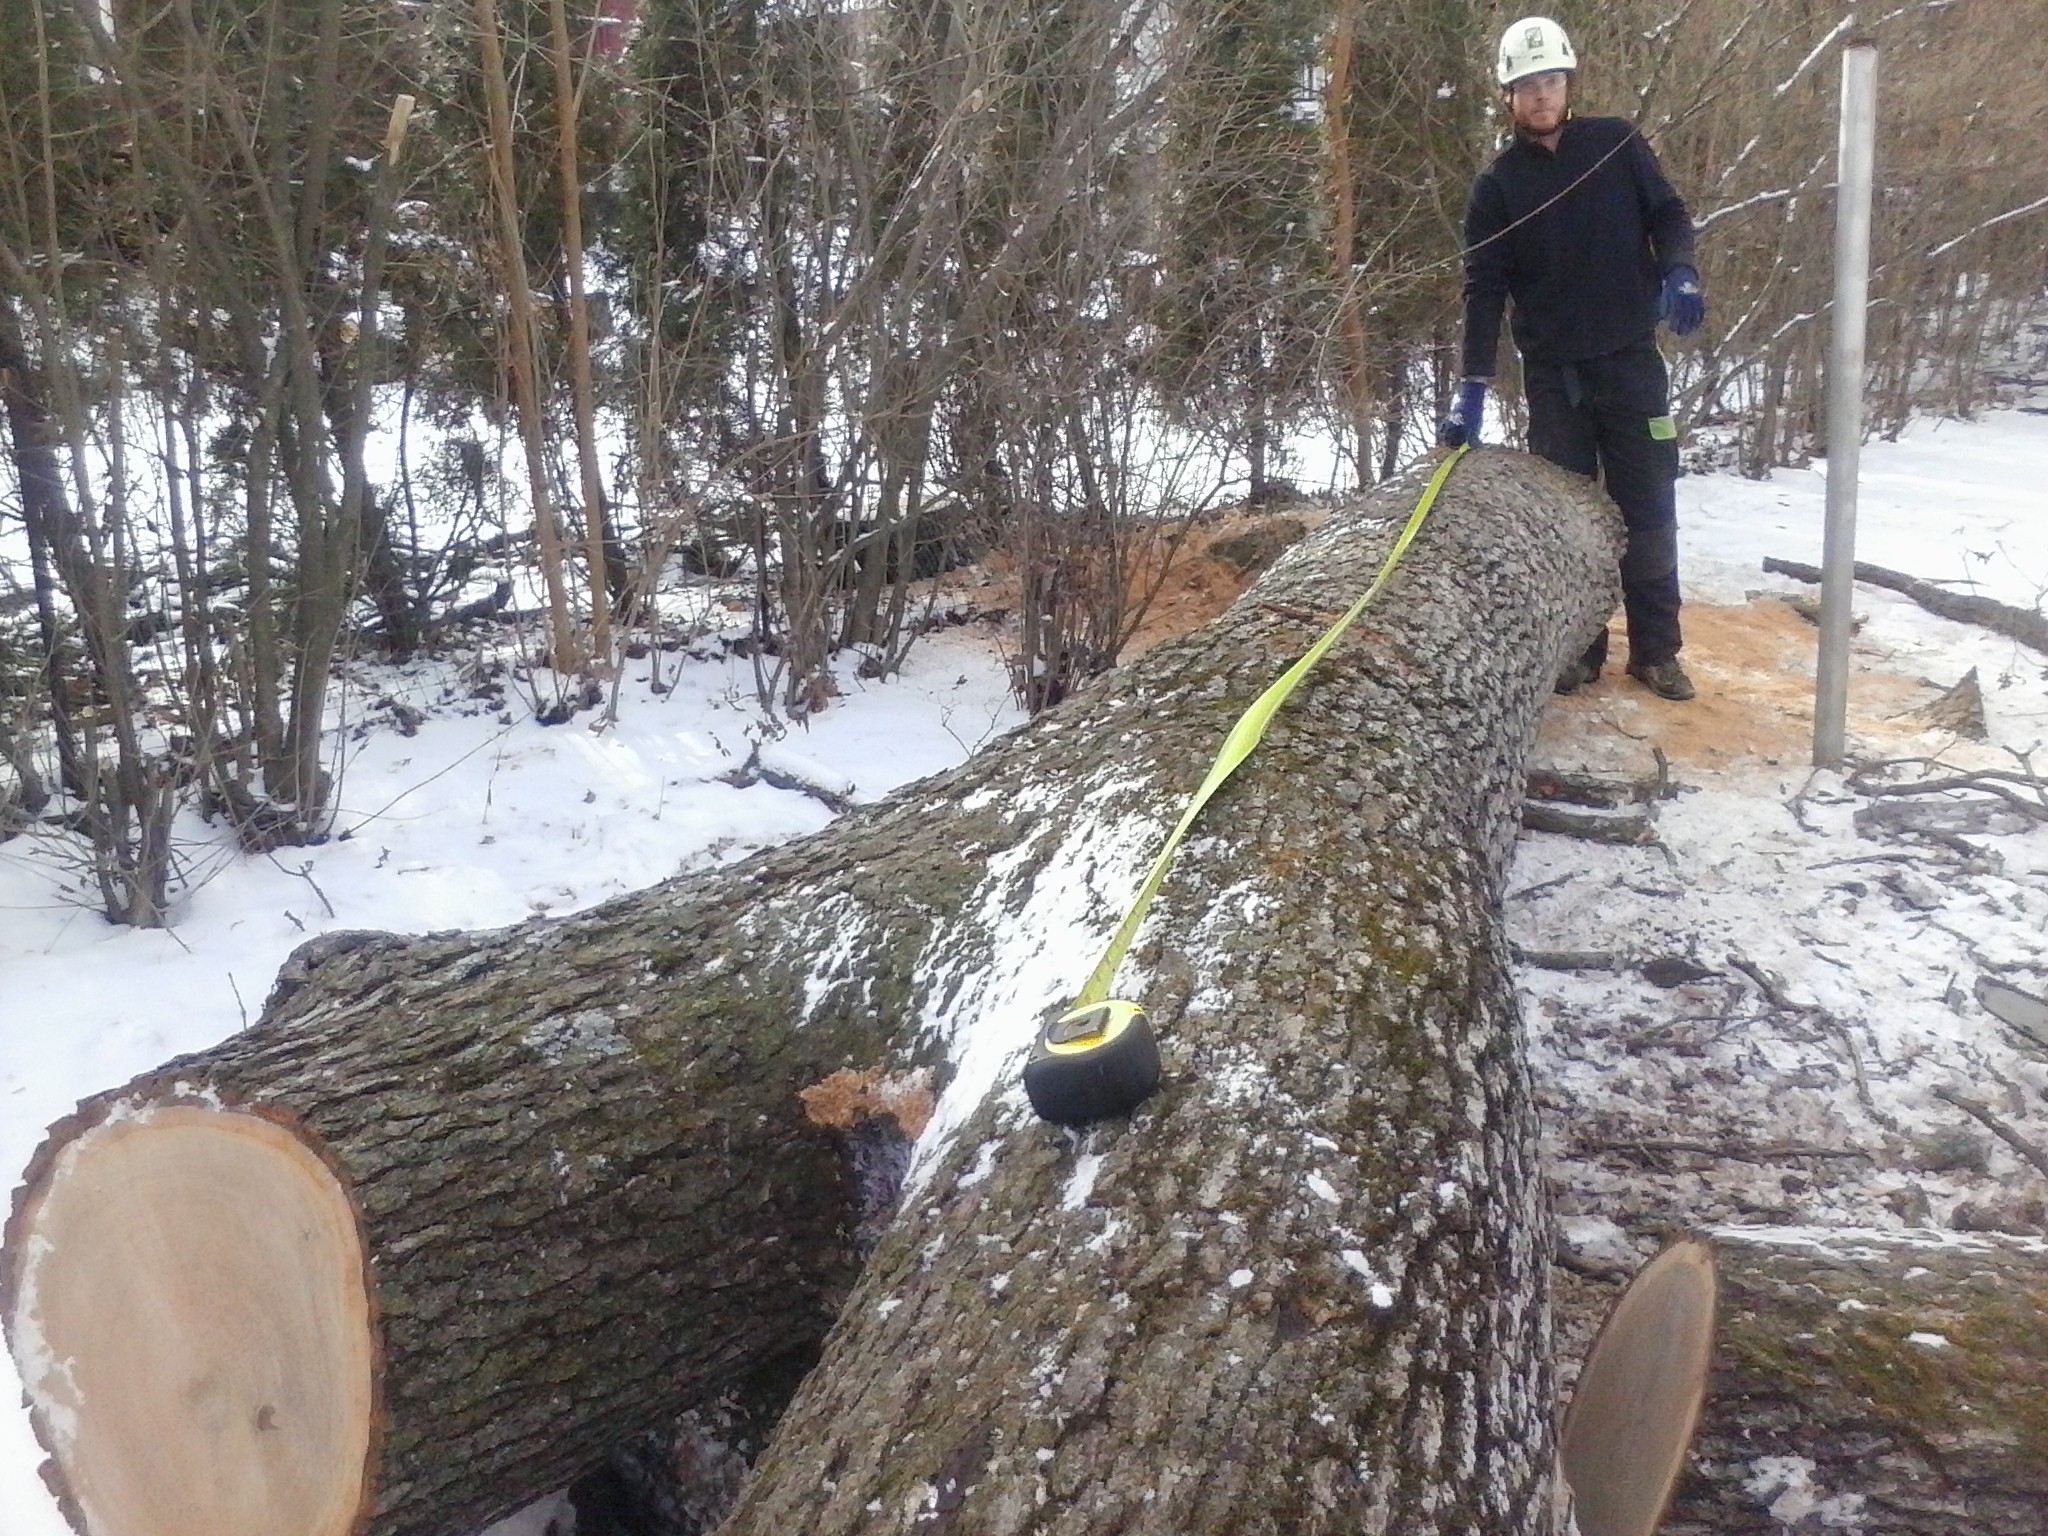 Cameron measures a sizable felled white oak tree on Madison's west side. The tree died a natural death and needed to be removed.